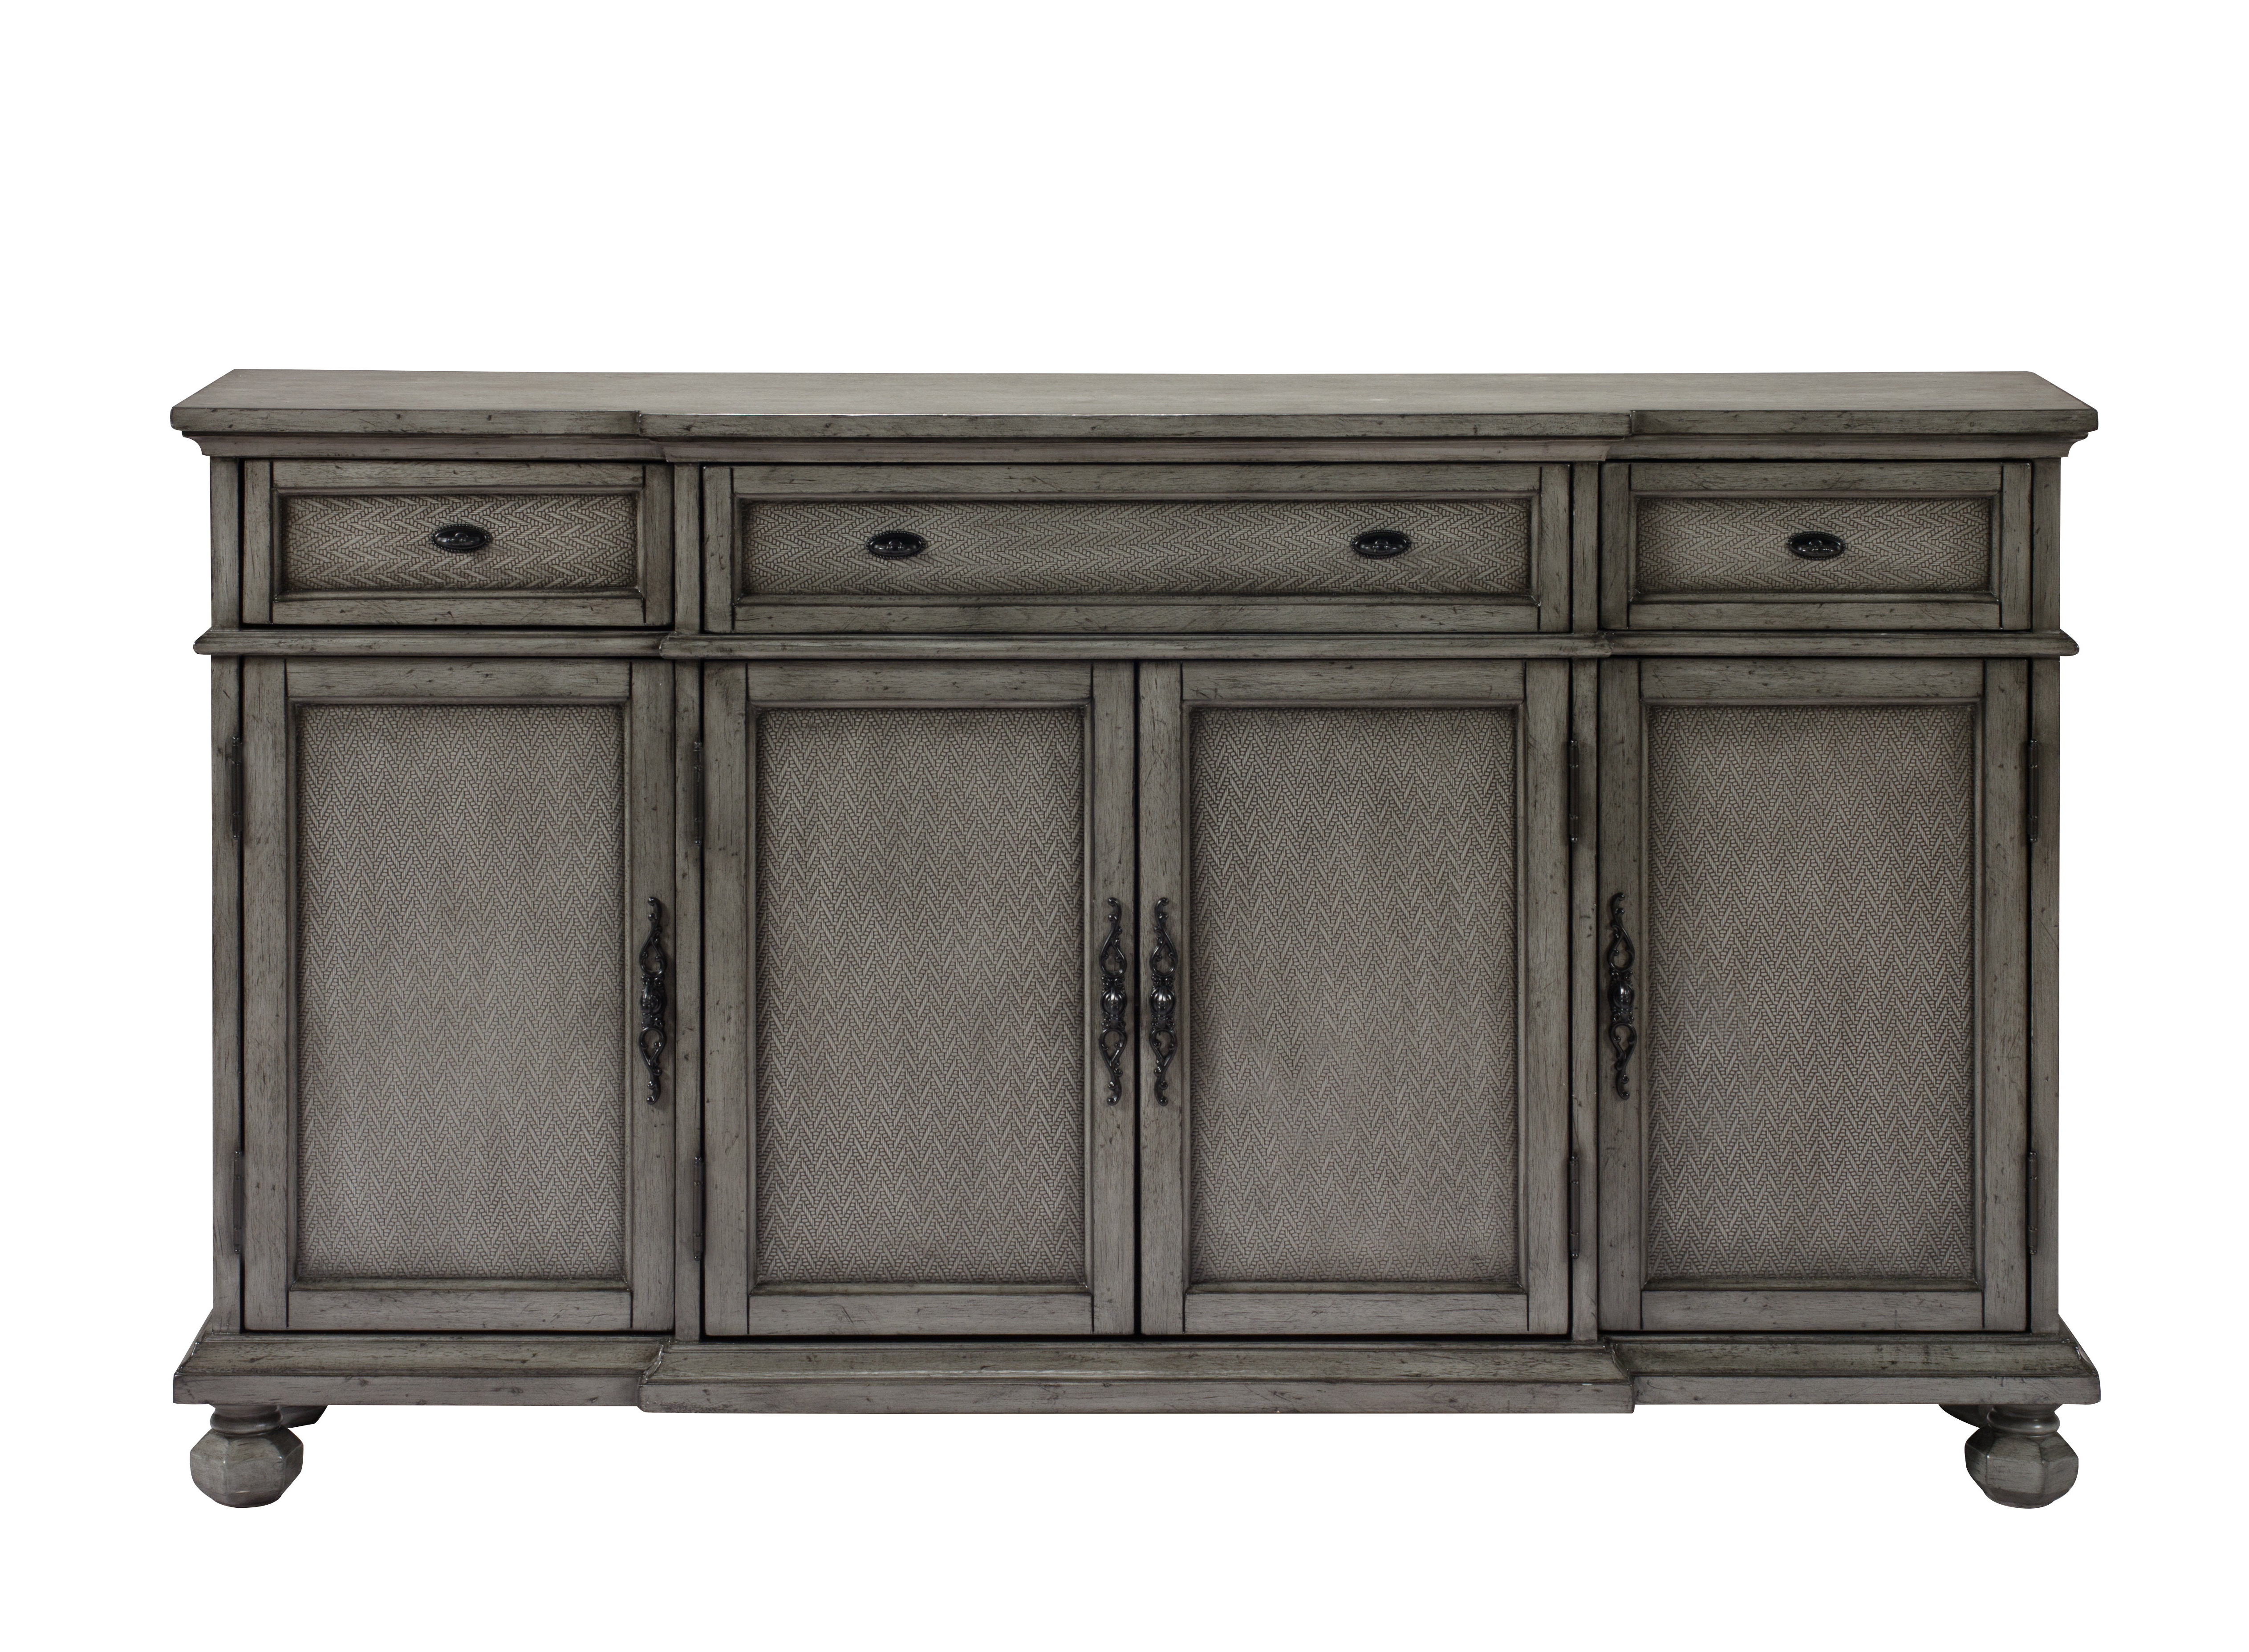 Giulia 3 Drawer Credenza & Reviews | Joss & Main Regarding Ilyan Traditional Wood Sideboards (View 4 of 20)